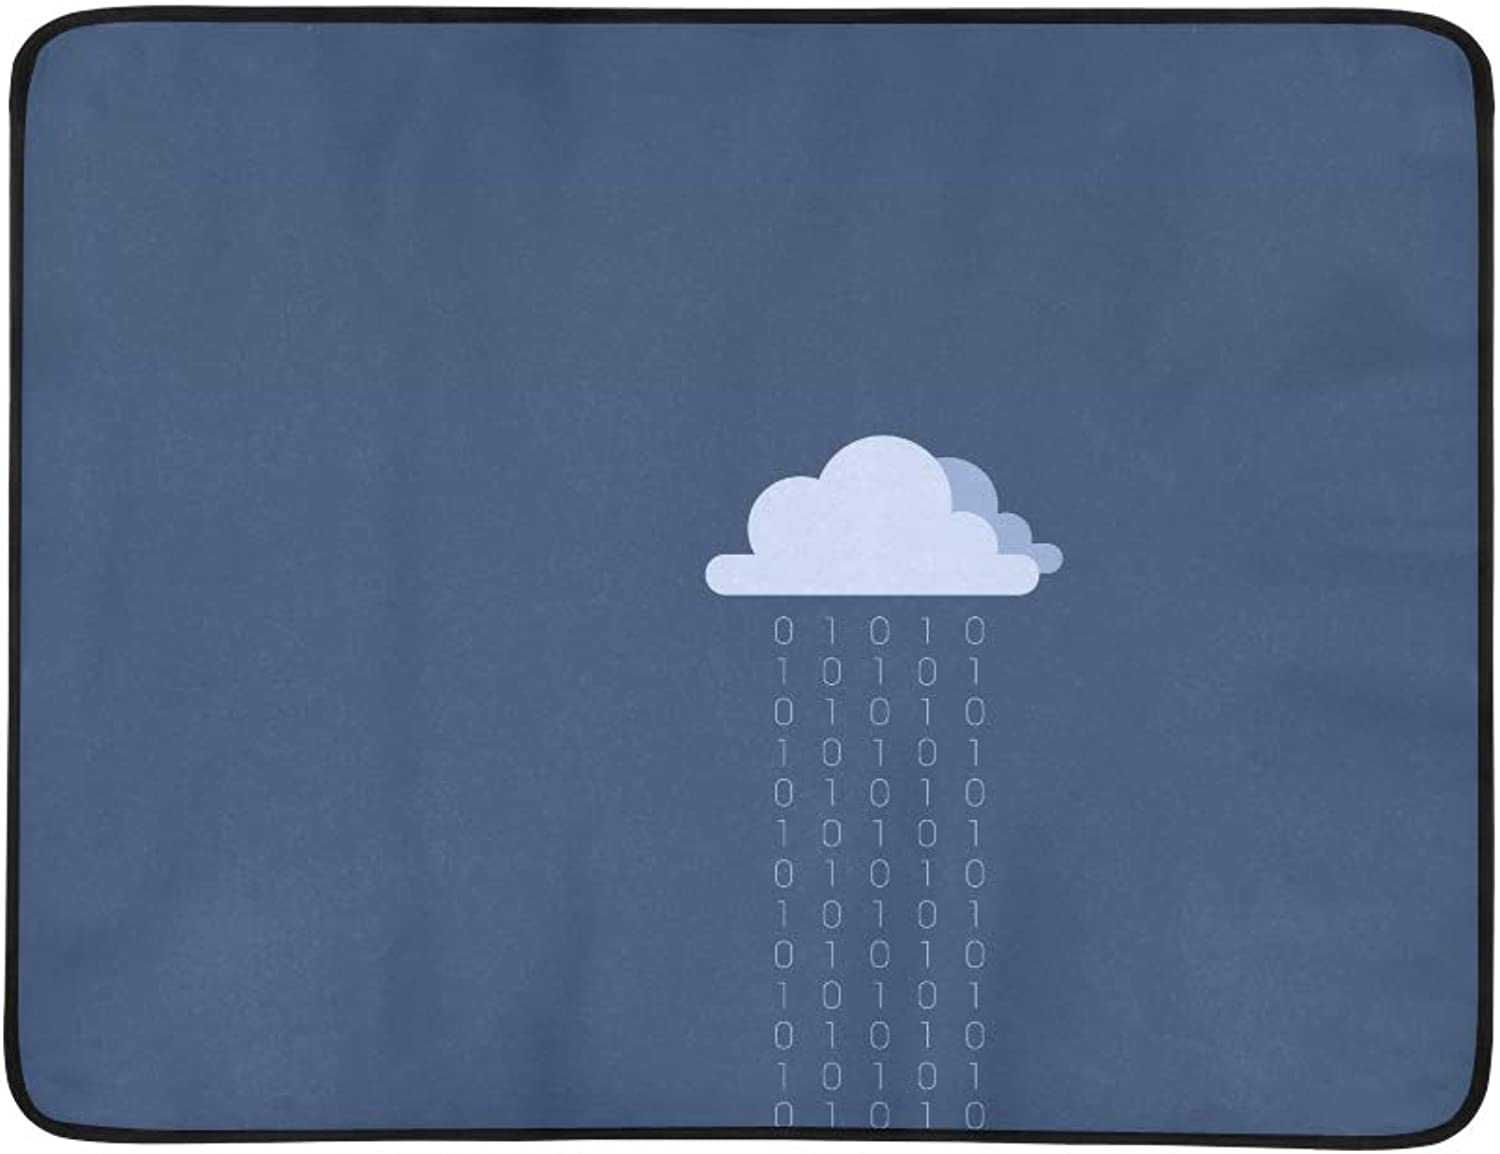 Clouds Minimalistic Binary bluee X Wallpaper Pattern Portable and Foldable Blanket Mat 60x78 Inch Handy Mat for Camping Picnic Beach Indoor Outdoor Travel